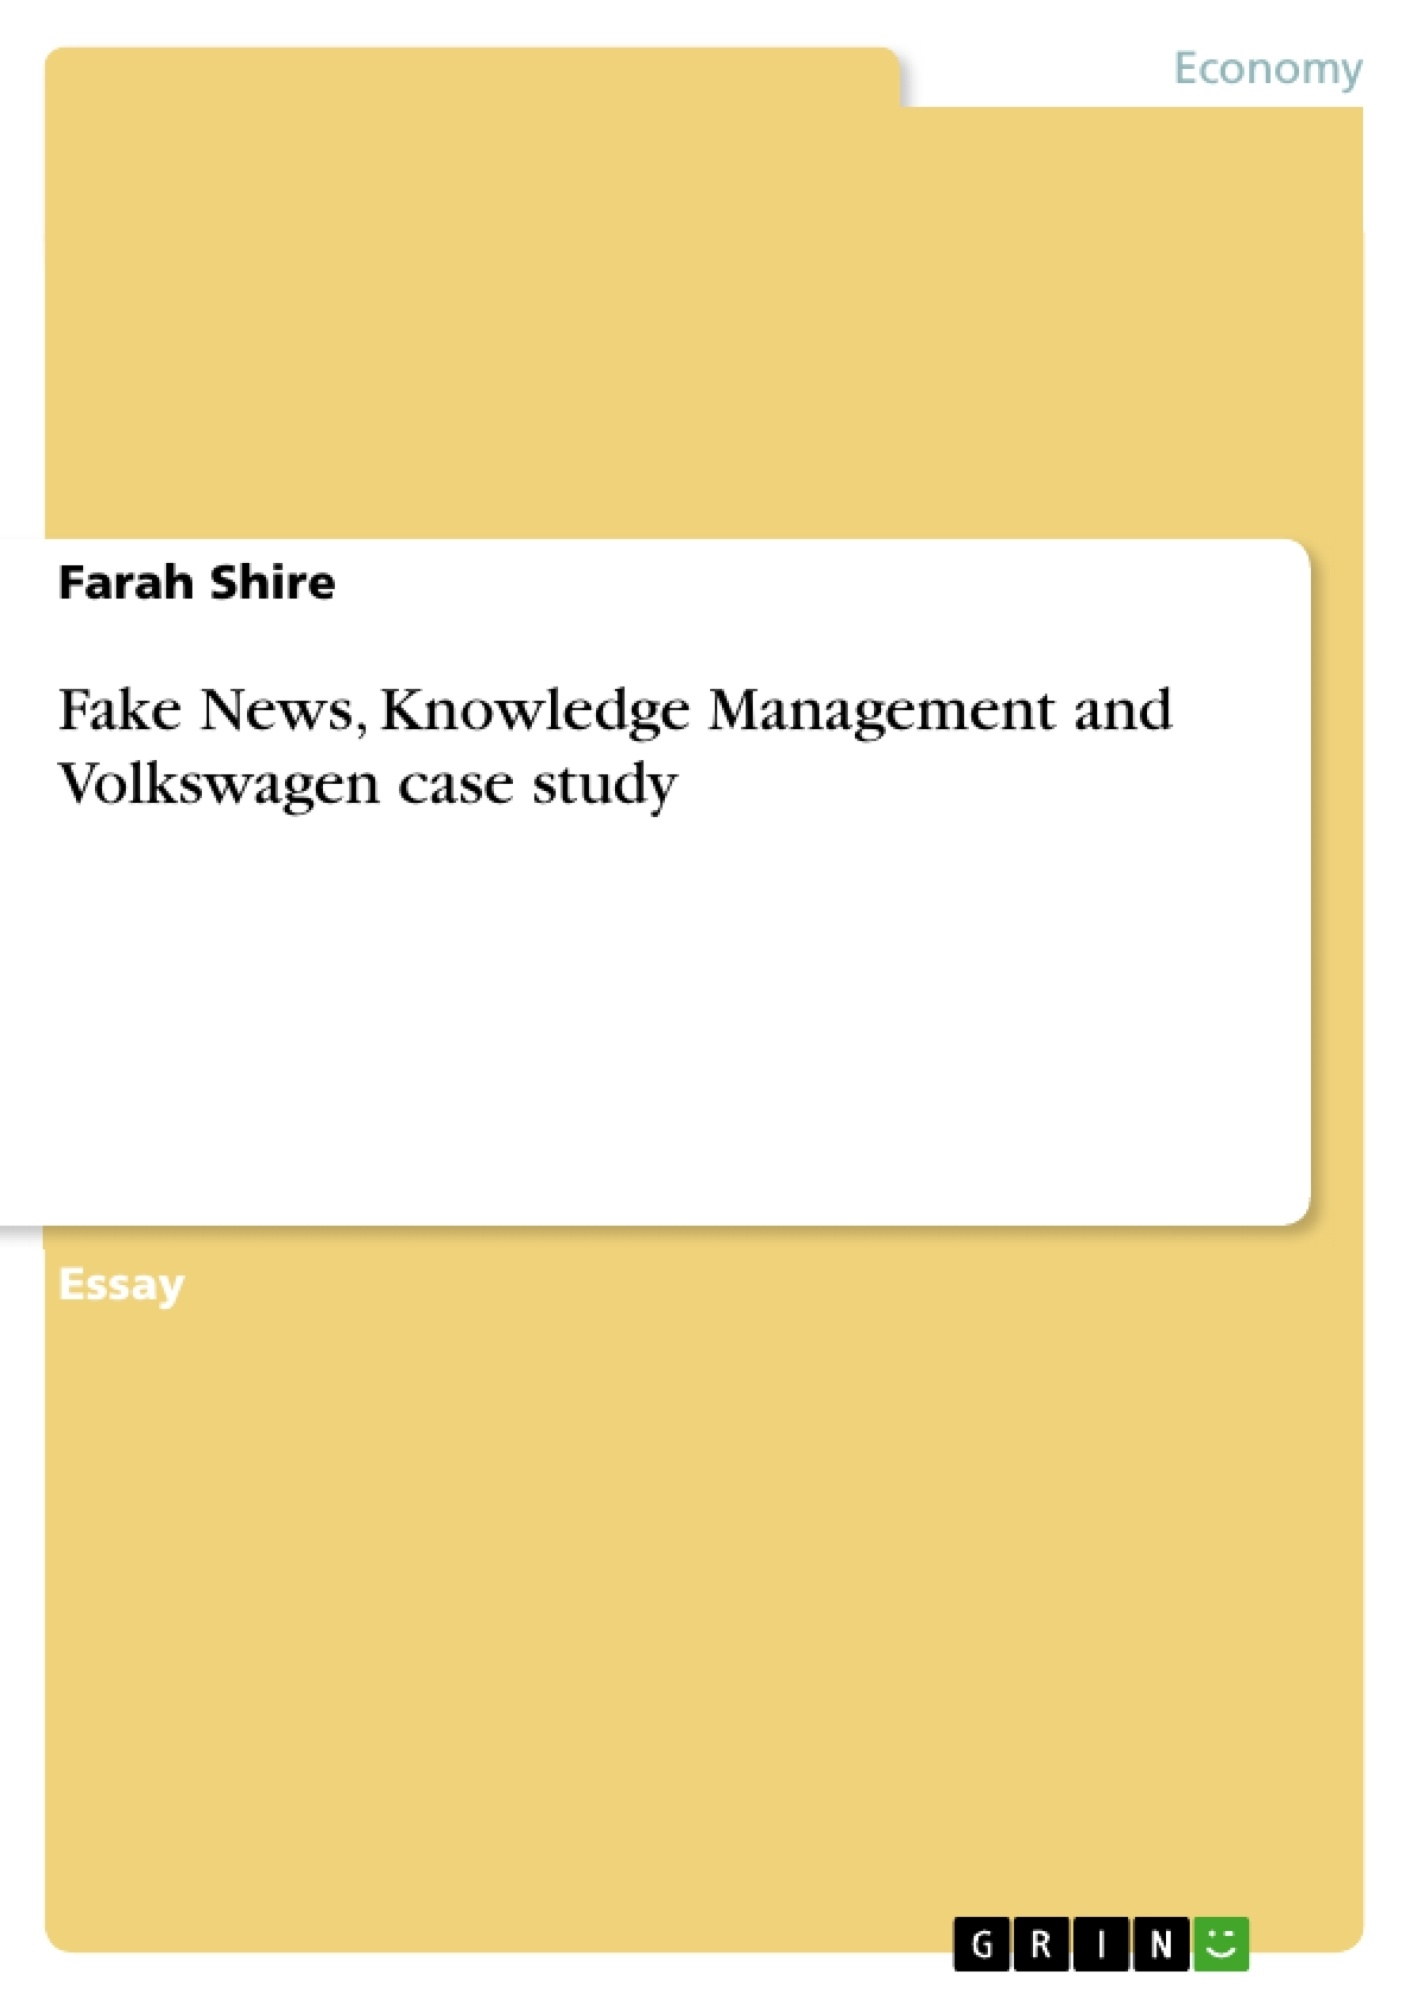 Title: Fake News, Knowledge Management and Volkswagen case study